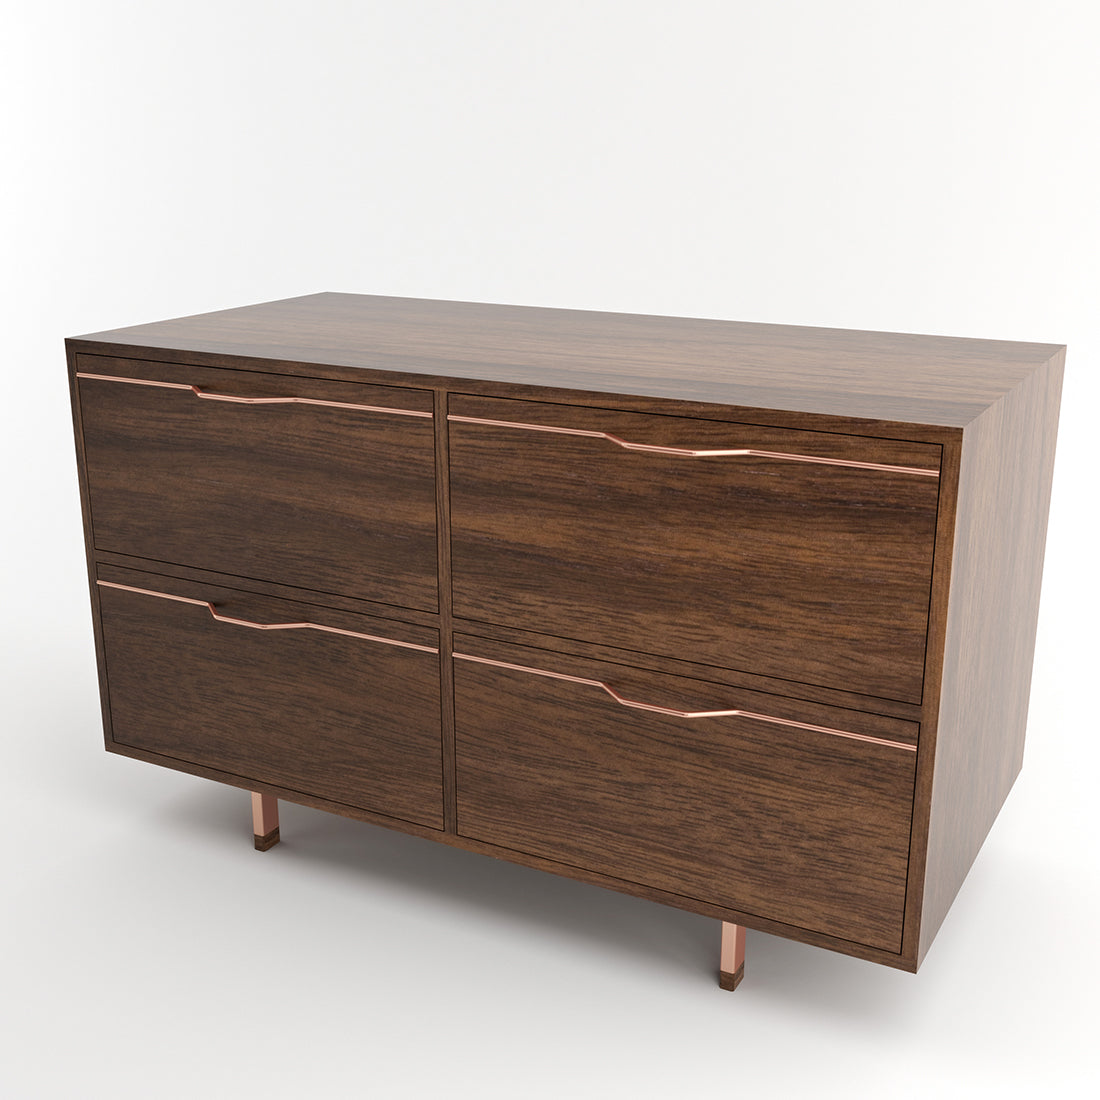 Chapman Walnut Double Unit Storage Cabinet w/ Drawers